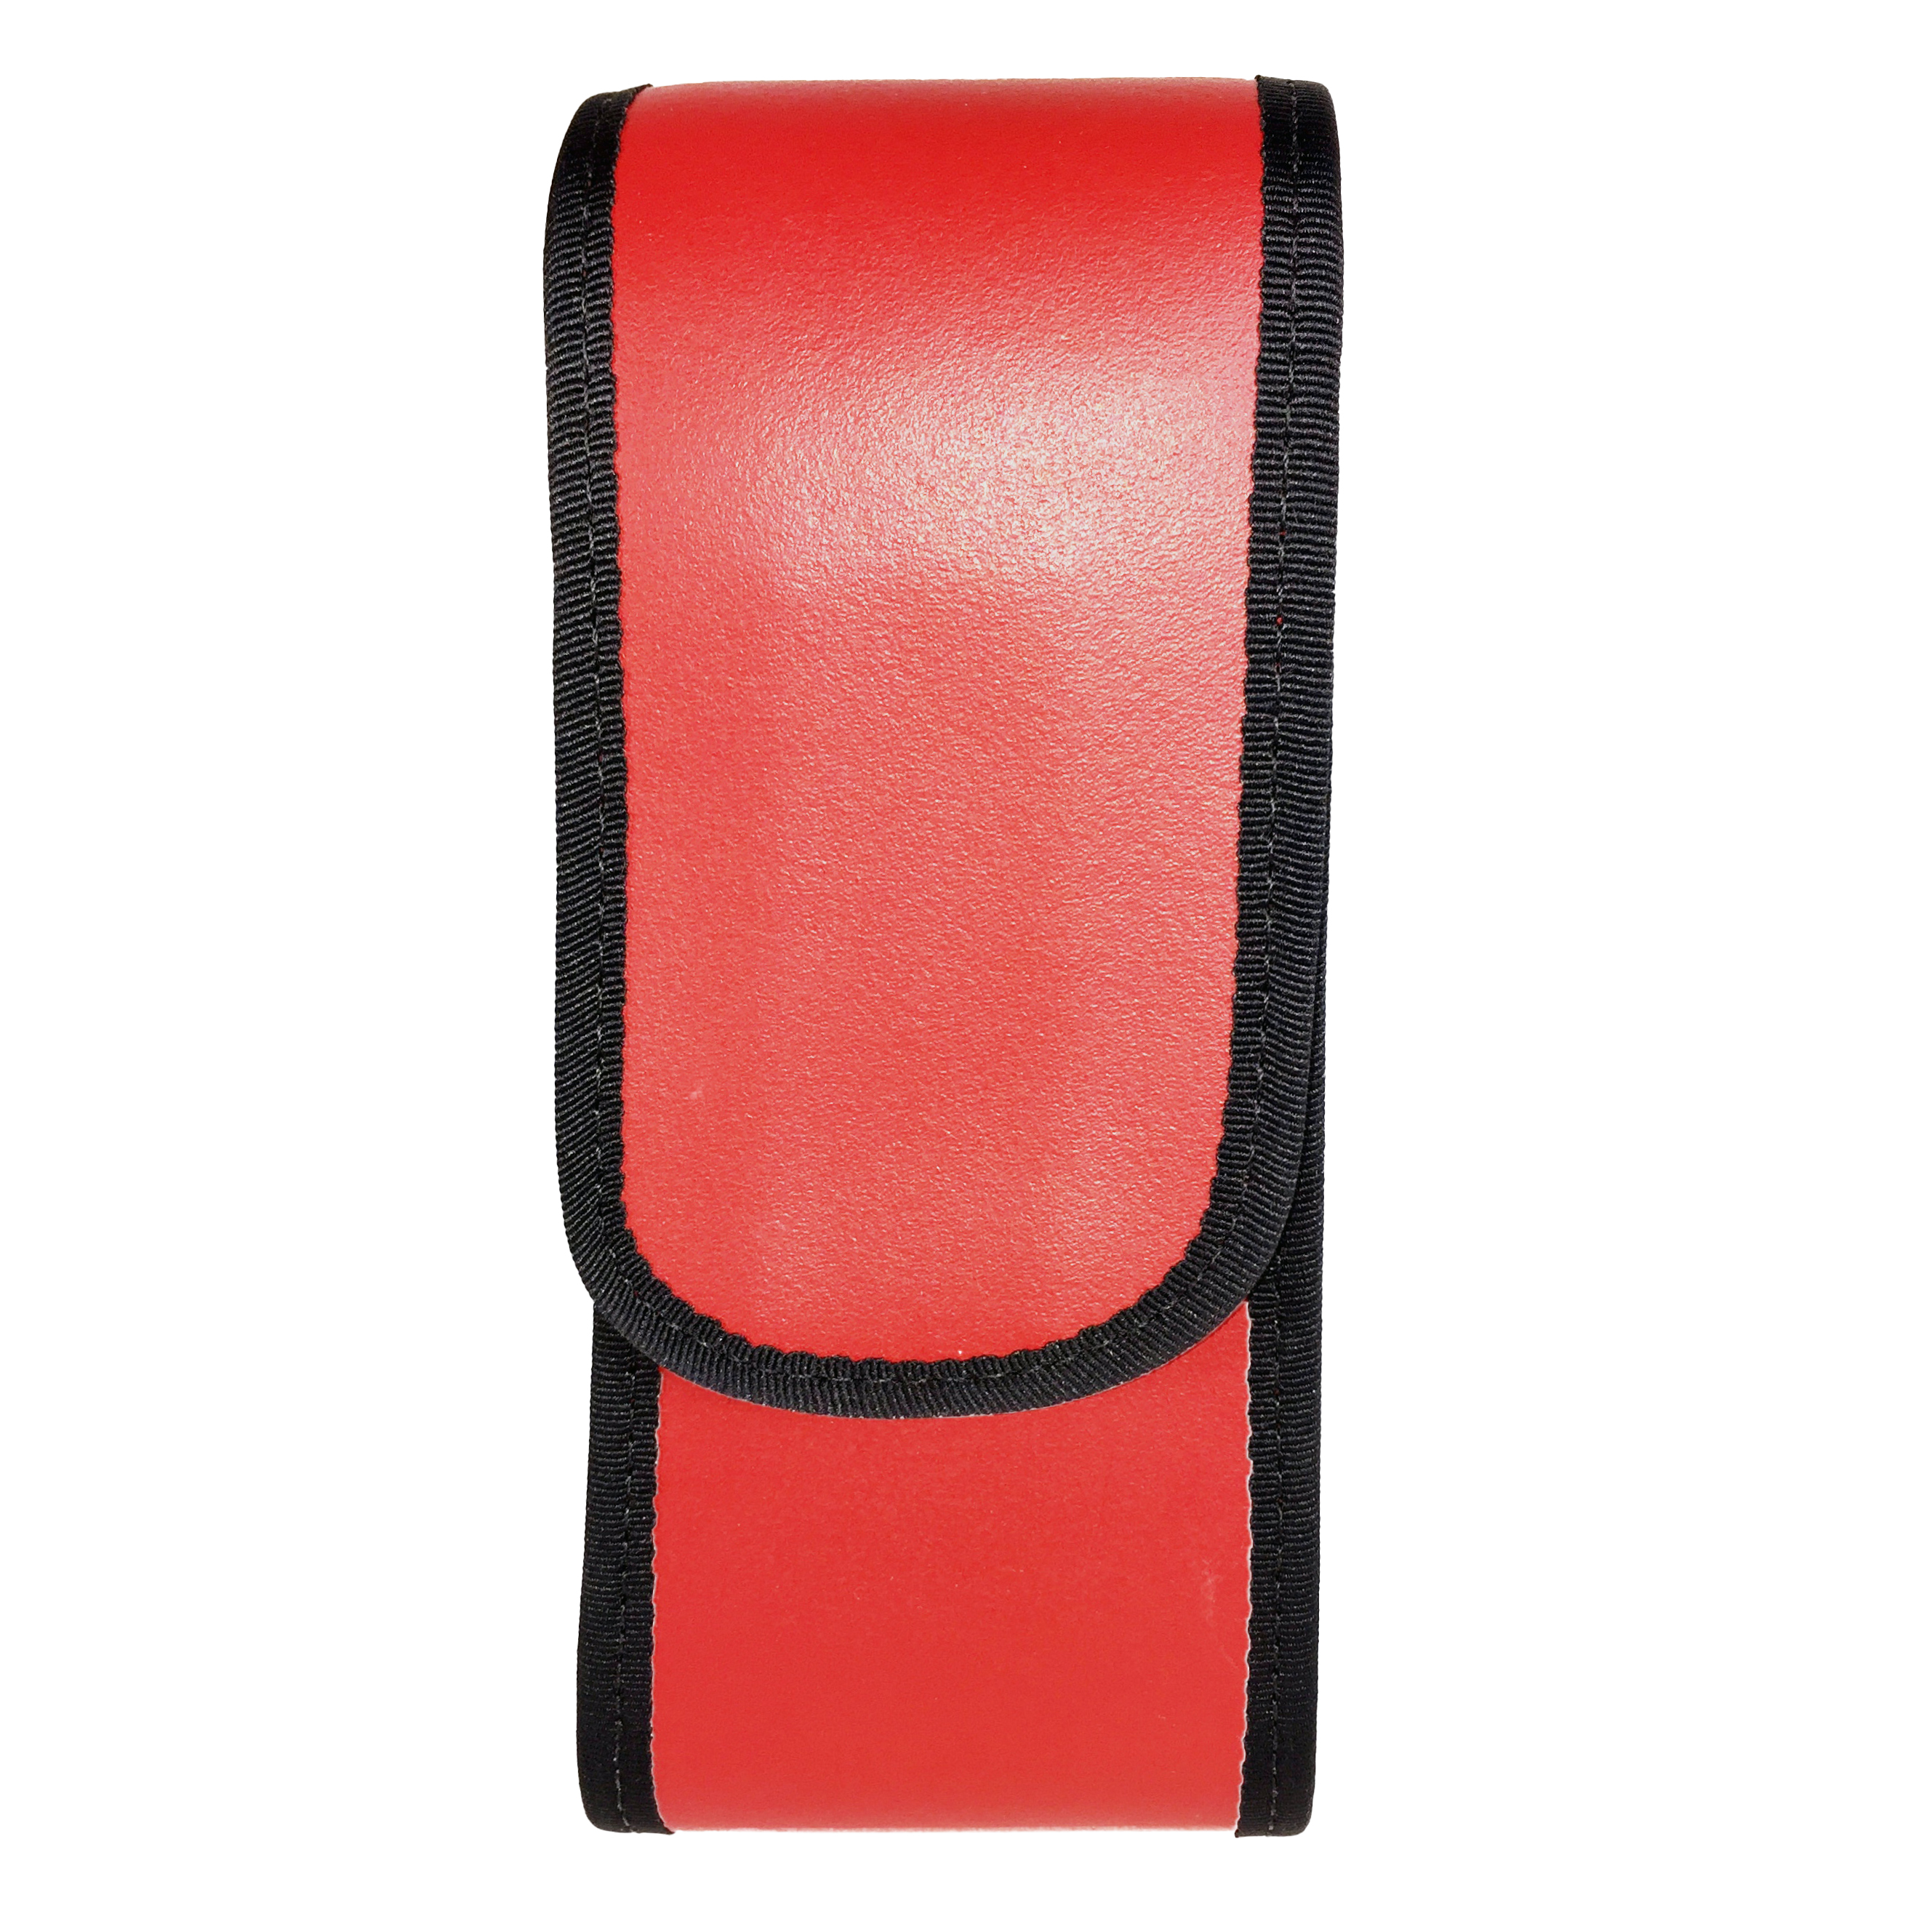 Leather radio case for DECT Phone Red